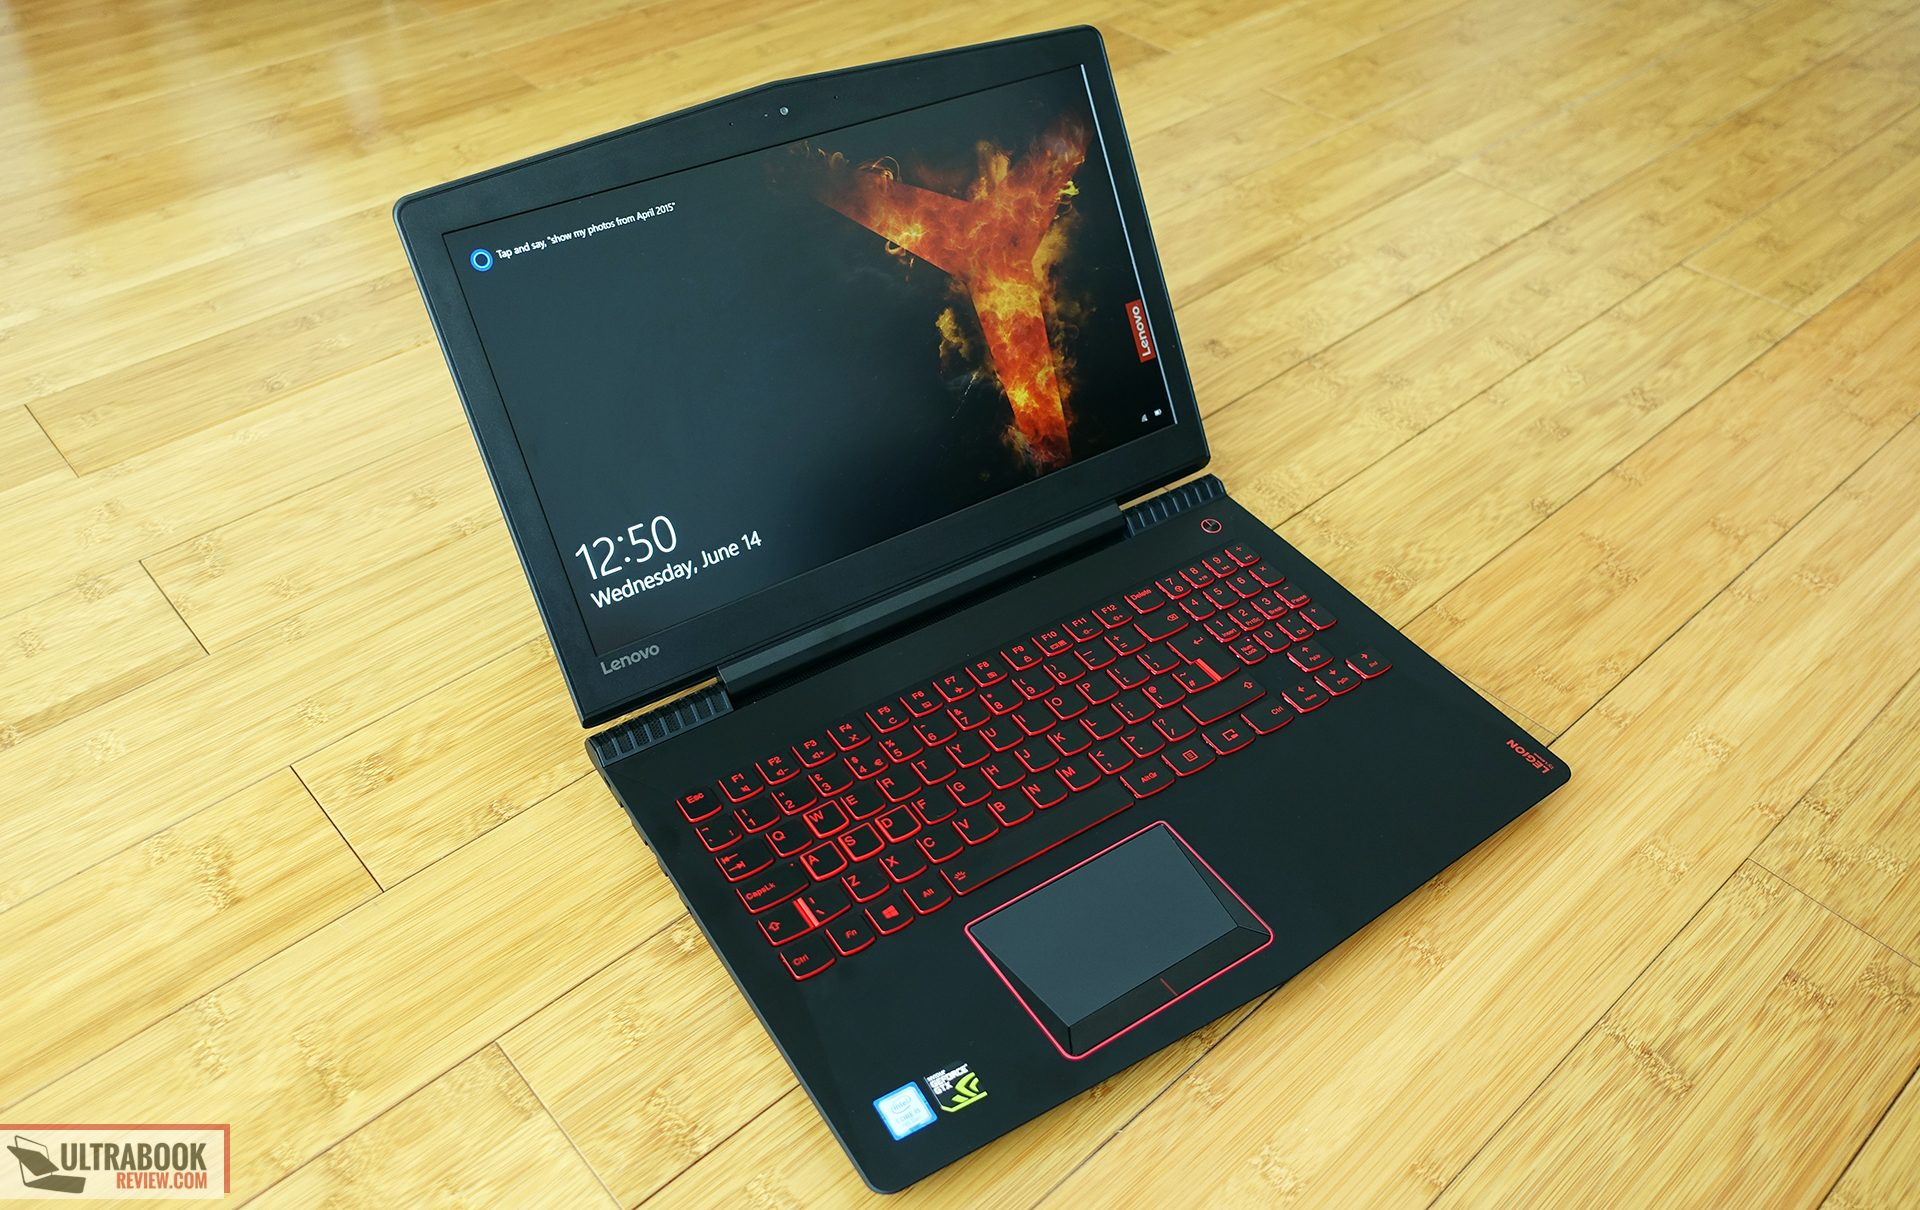 Lenovo Legion Y520 review - bang-for-the-buck gaming laptop at under